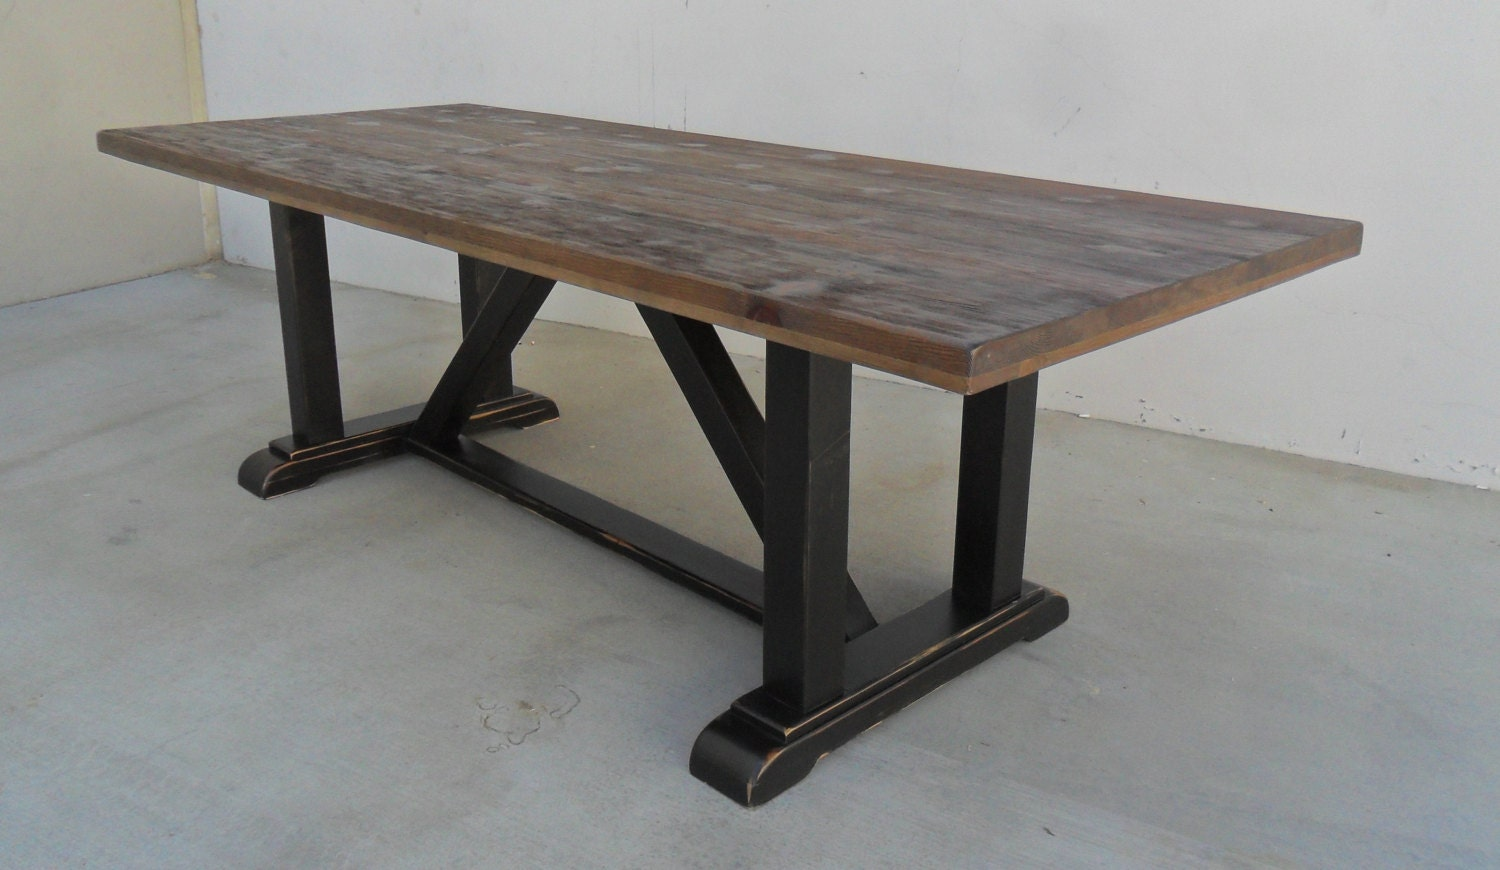 Dining table reclaimed wood trestle table rustic Trestle dining table